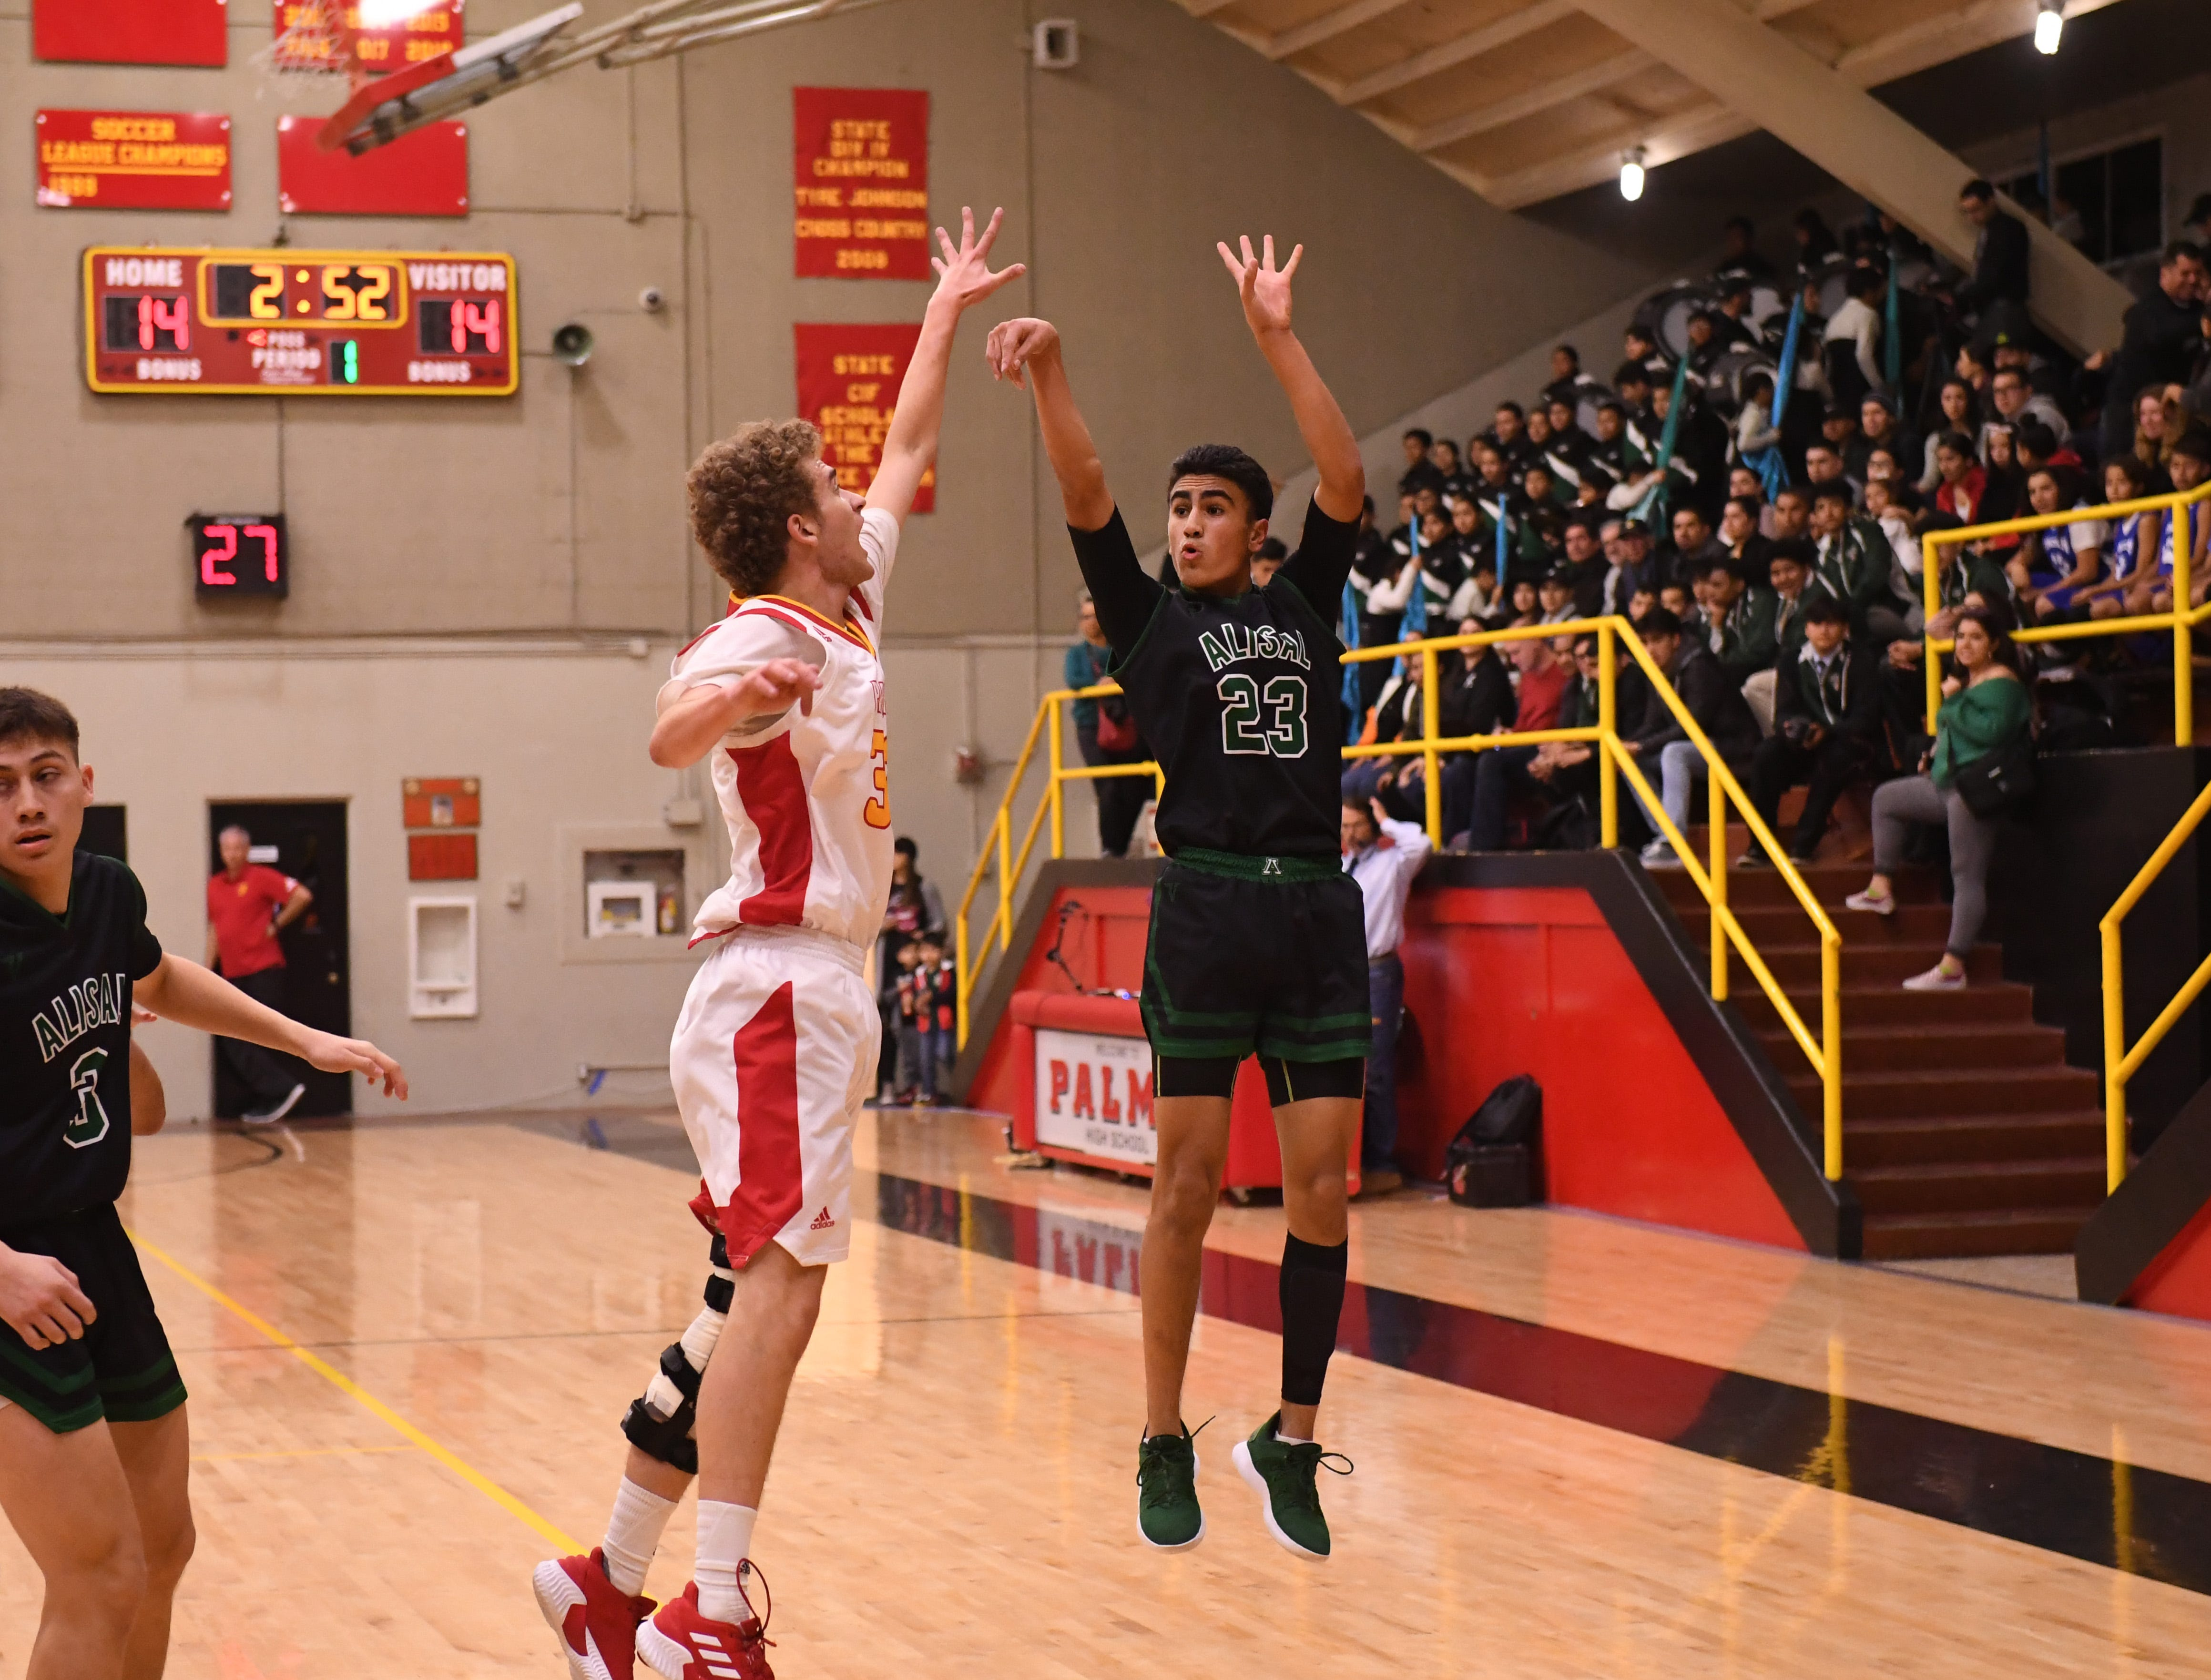 Alisal guard Josue Gil-Silva (23) fires off a 3-pointer in the opening quarter.